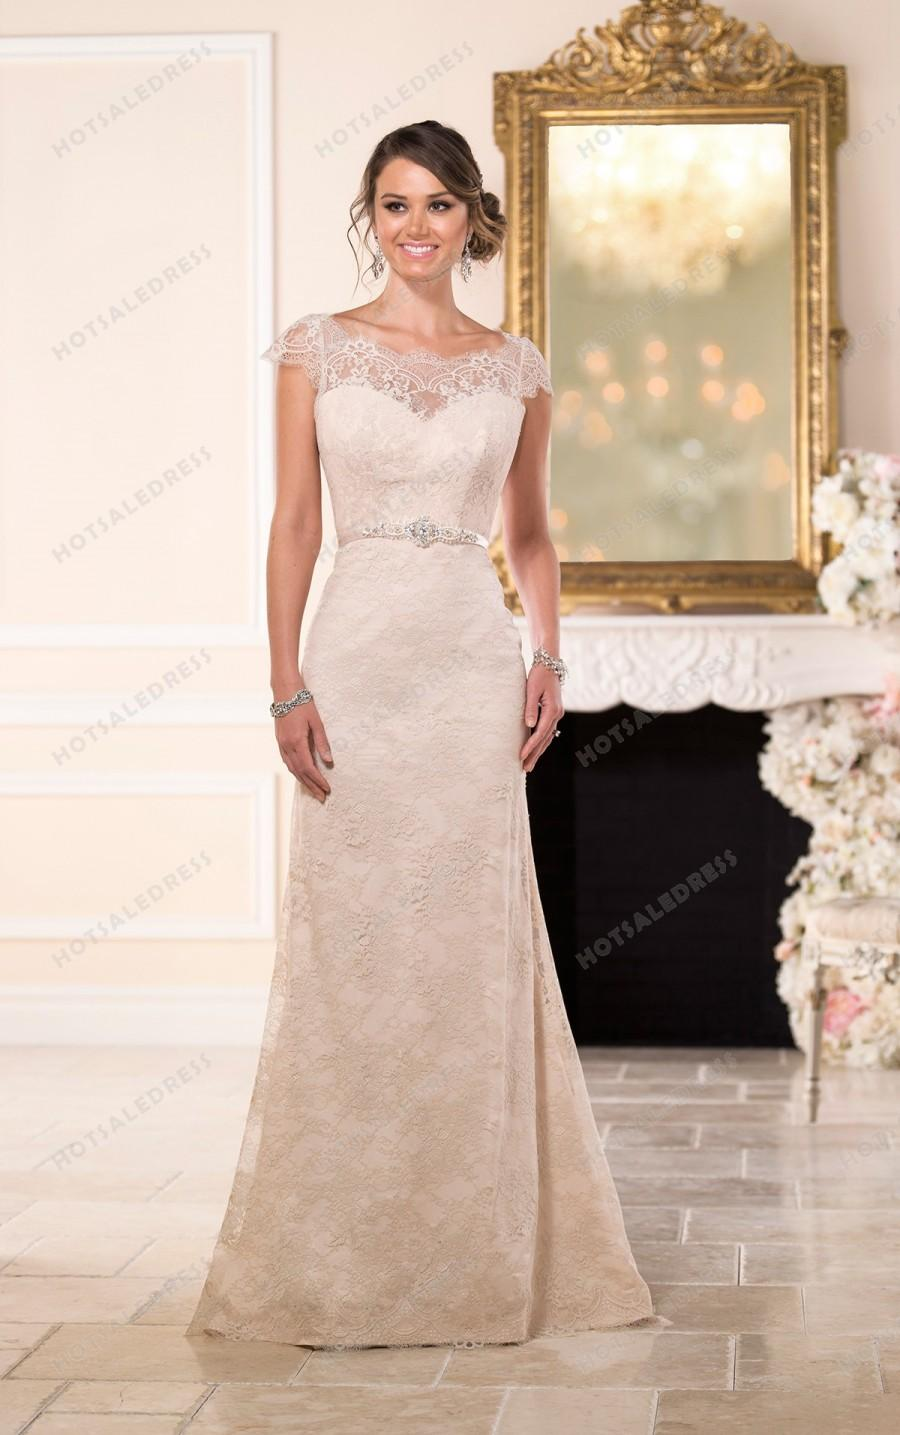 Stella york vintage inspired wedding dresses style 6043 2376672 stella york vintage inspired wedding dresses style 6043 ombrellifo Choice Image